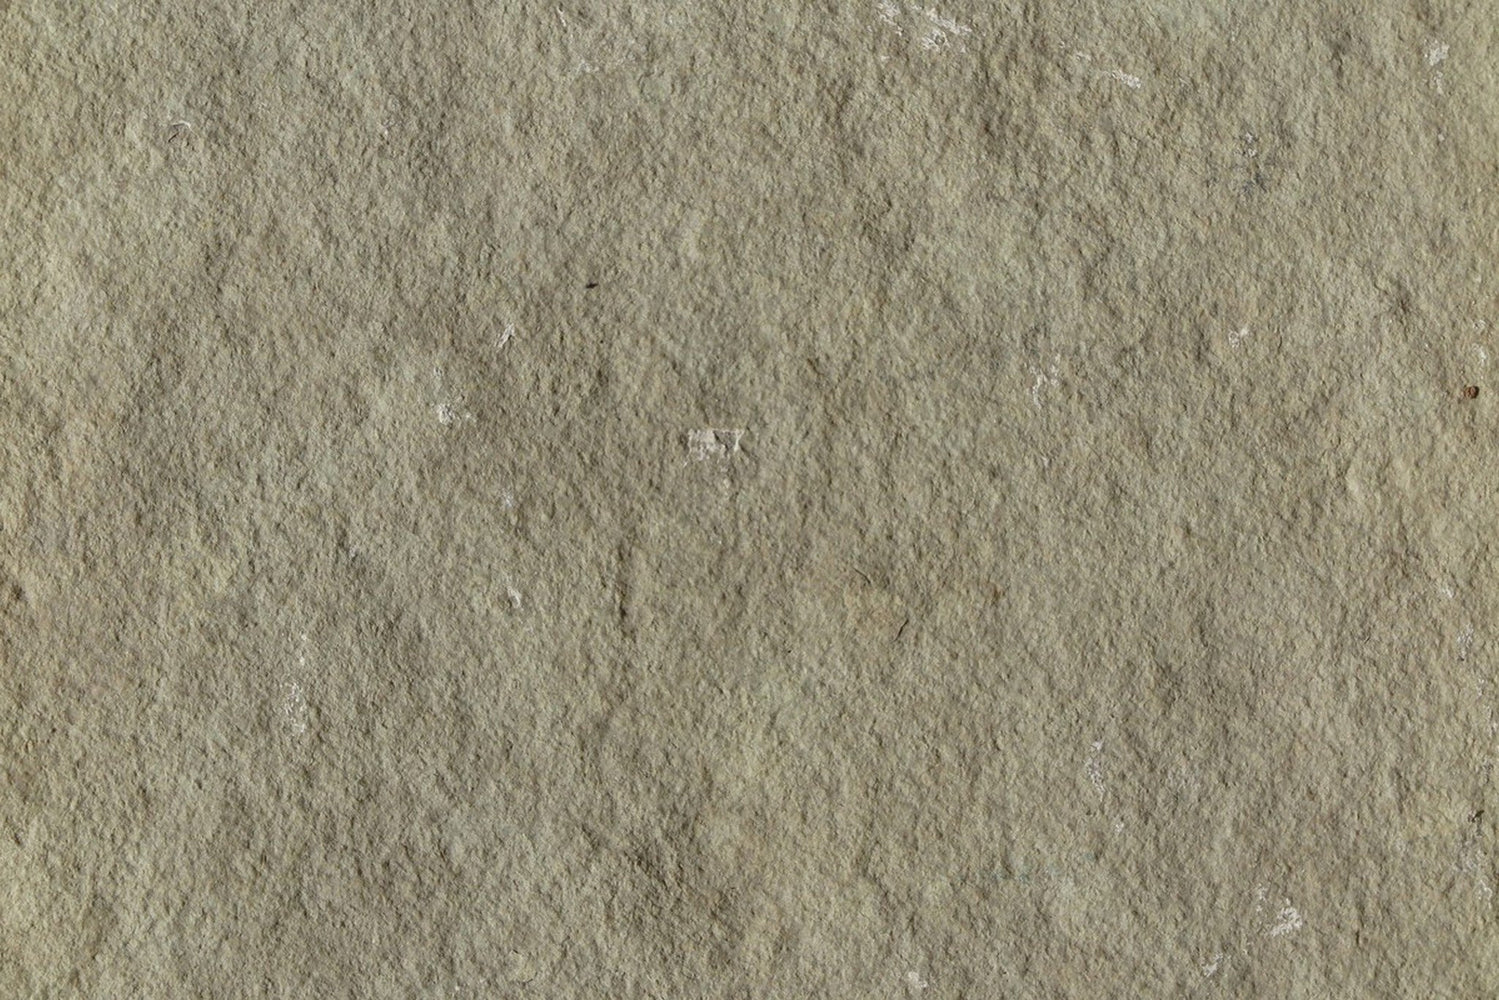 "French Vanilla Limestone Tile - 12"" x 12"" x 3/8"" - 1/2"" Natural Cleft Face, Flat Back"